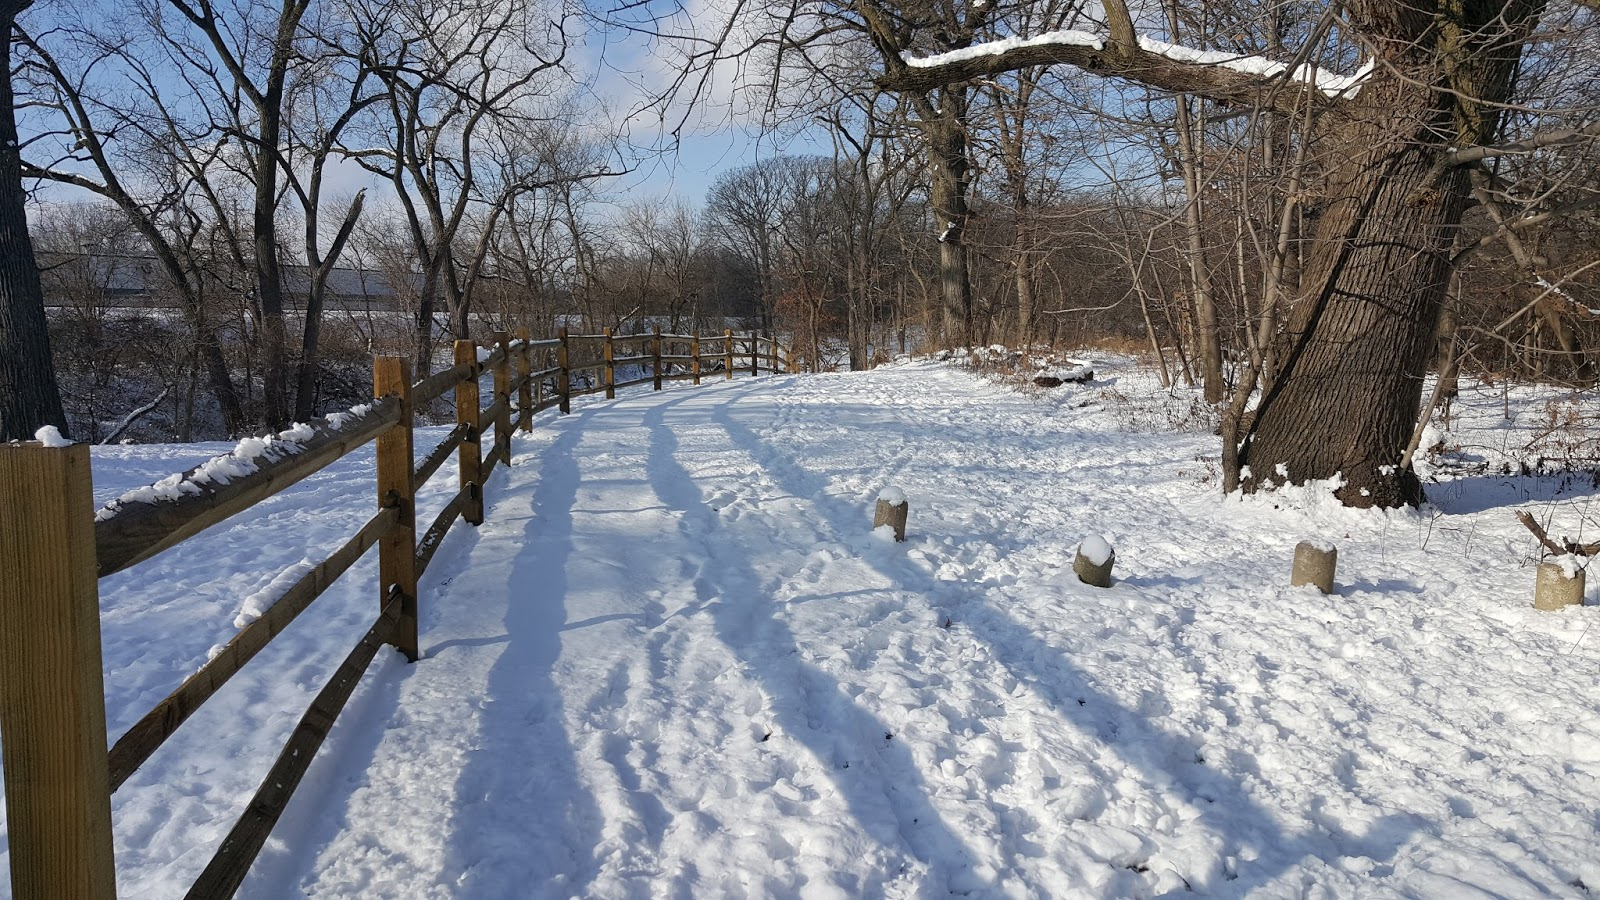 The Chicago Real Estate Local: Sold! Clients win mutiple offer for Forest Glen double-lot house